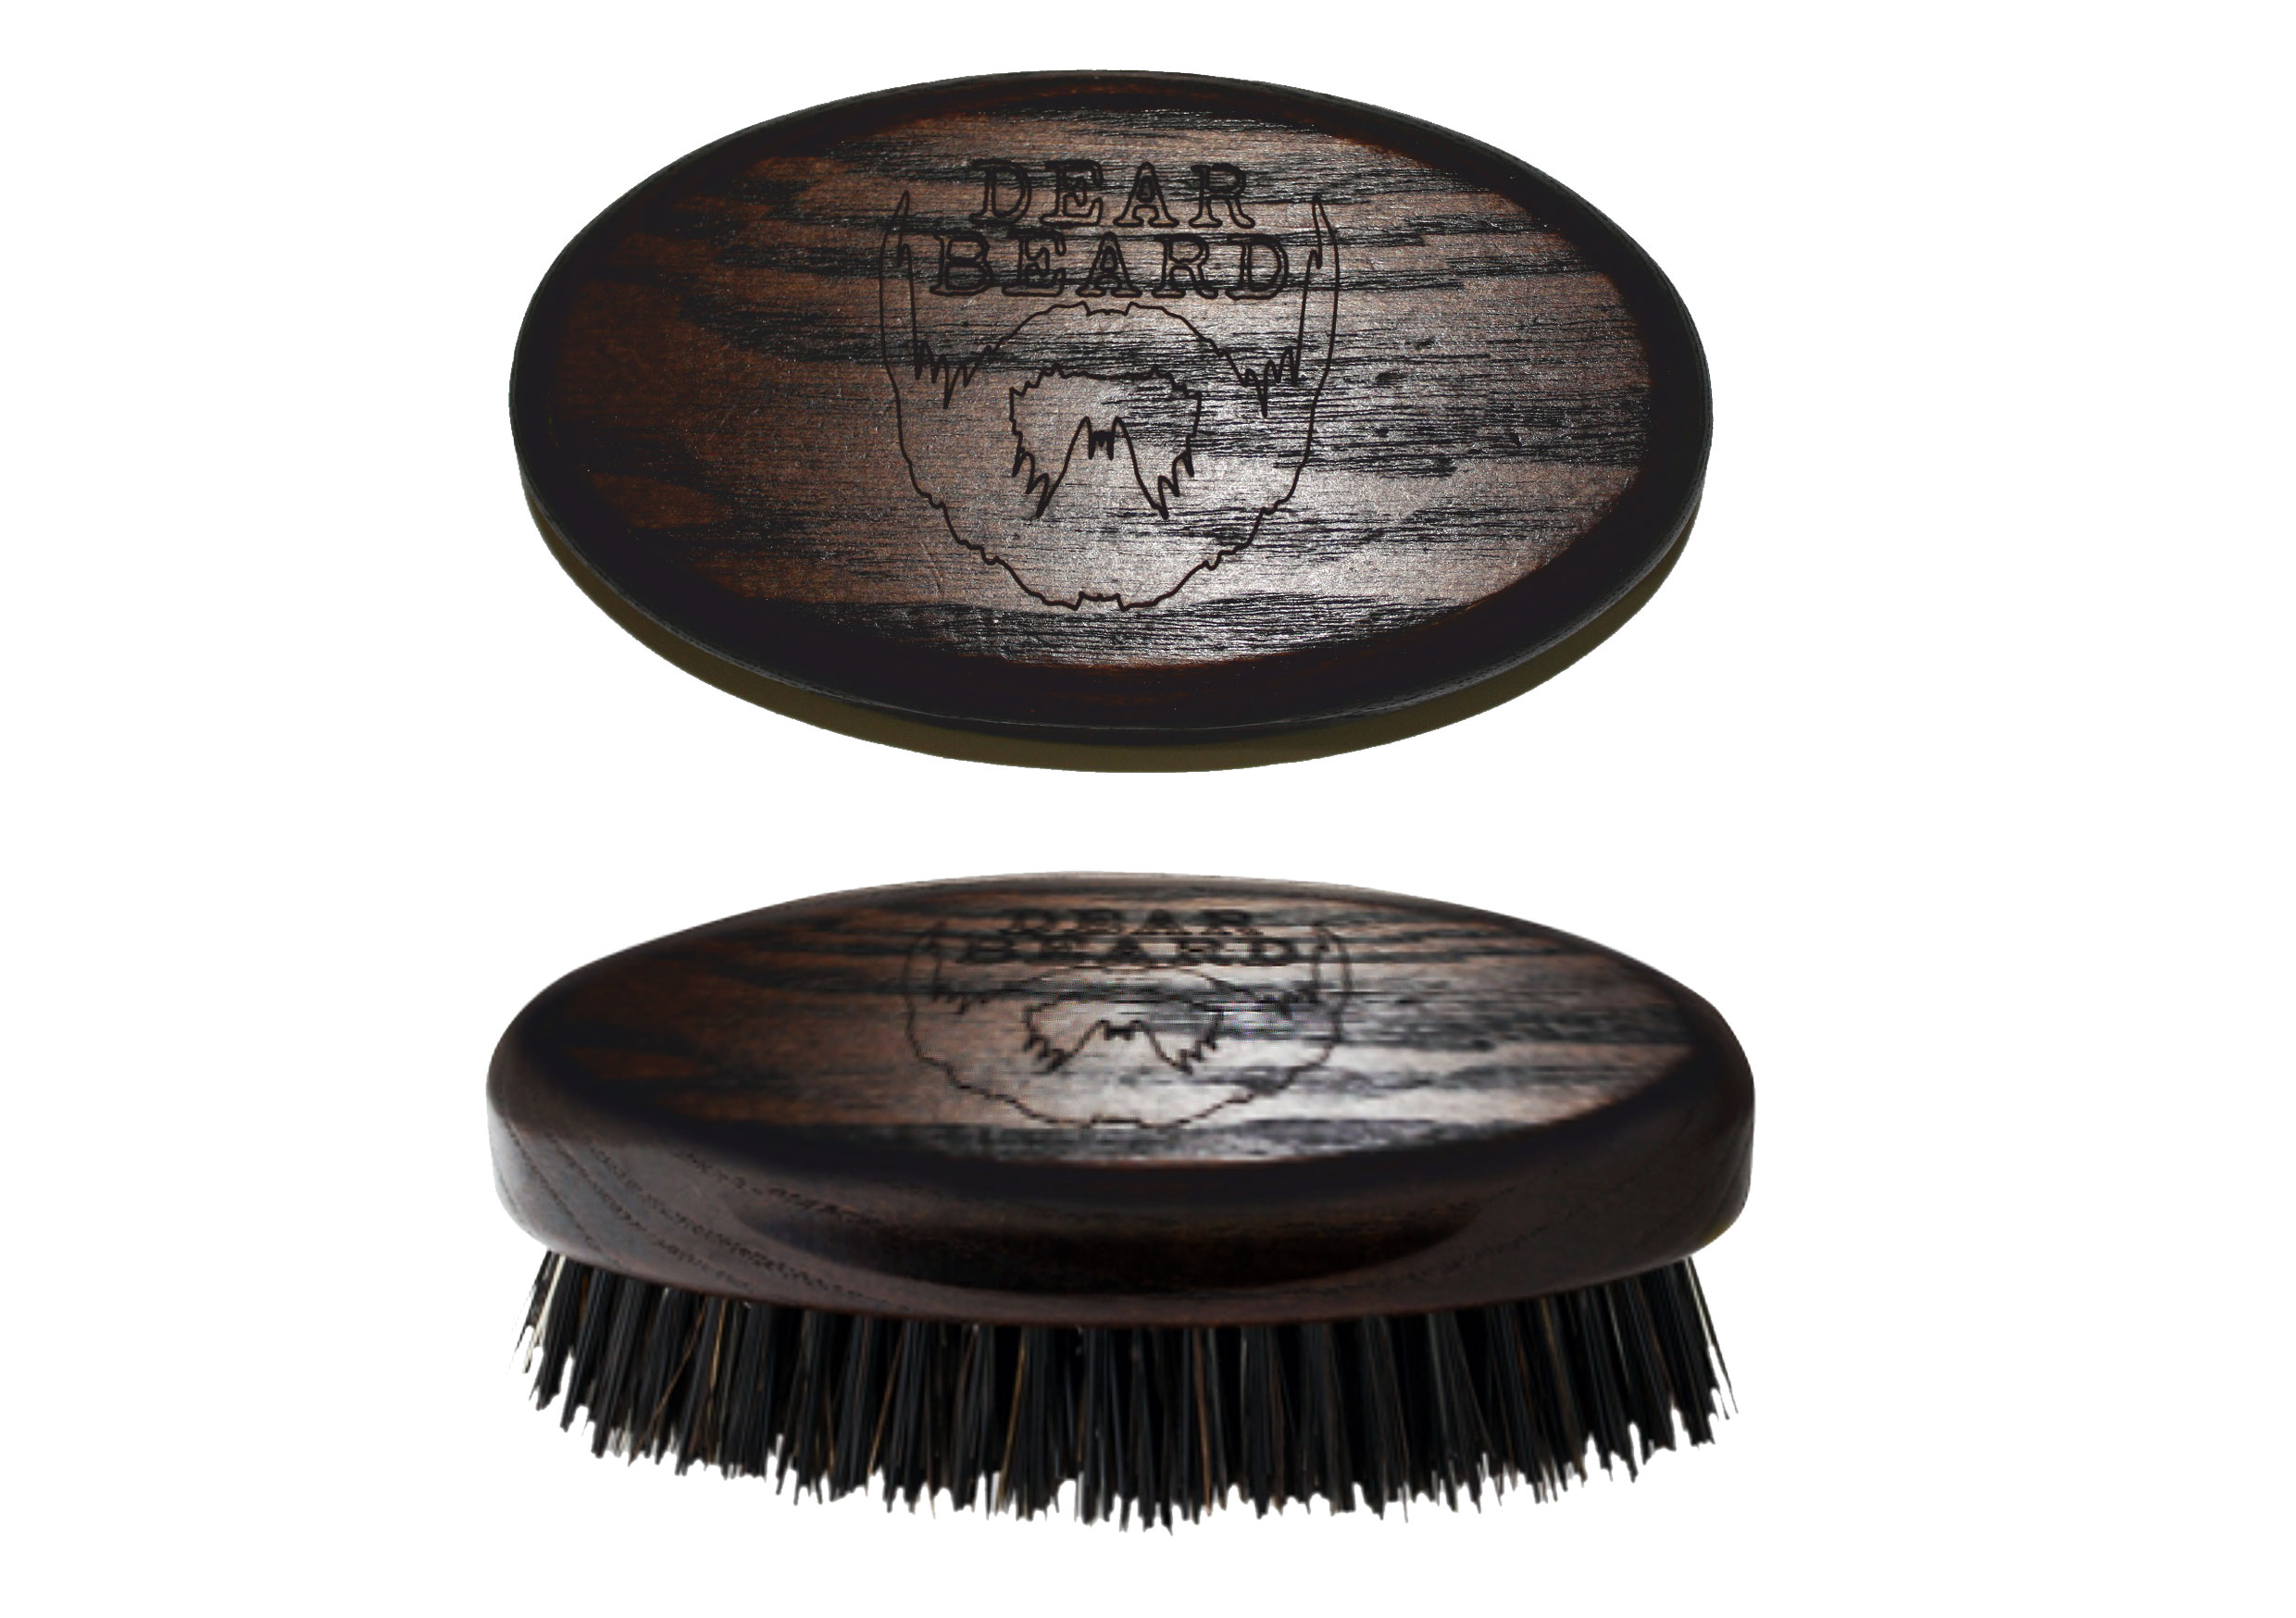 DEAR BEARD Mini Wood Brush (made in Italy)